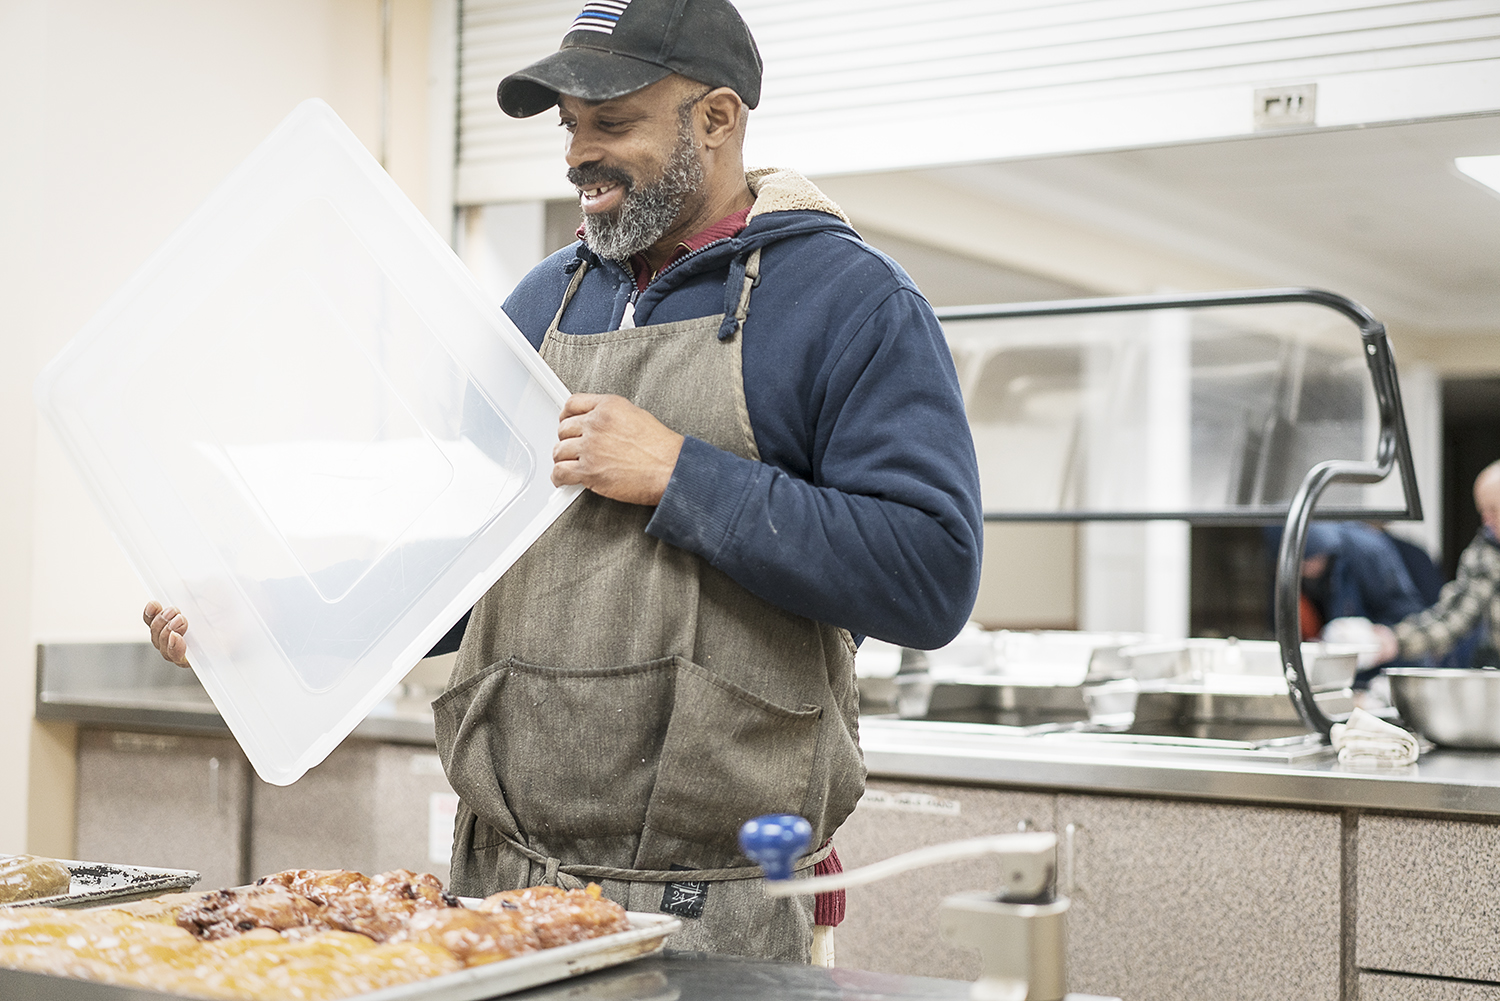 Flint, MI - Thursday, January 4, 2018: Randall Thompson, 50, of Flint, smiles as he covers up fresh donuts for delivery at Blueline Donuts inside Carriage Town Ministries.Tim Galloway for FlintSide